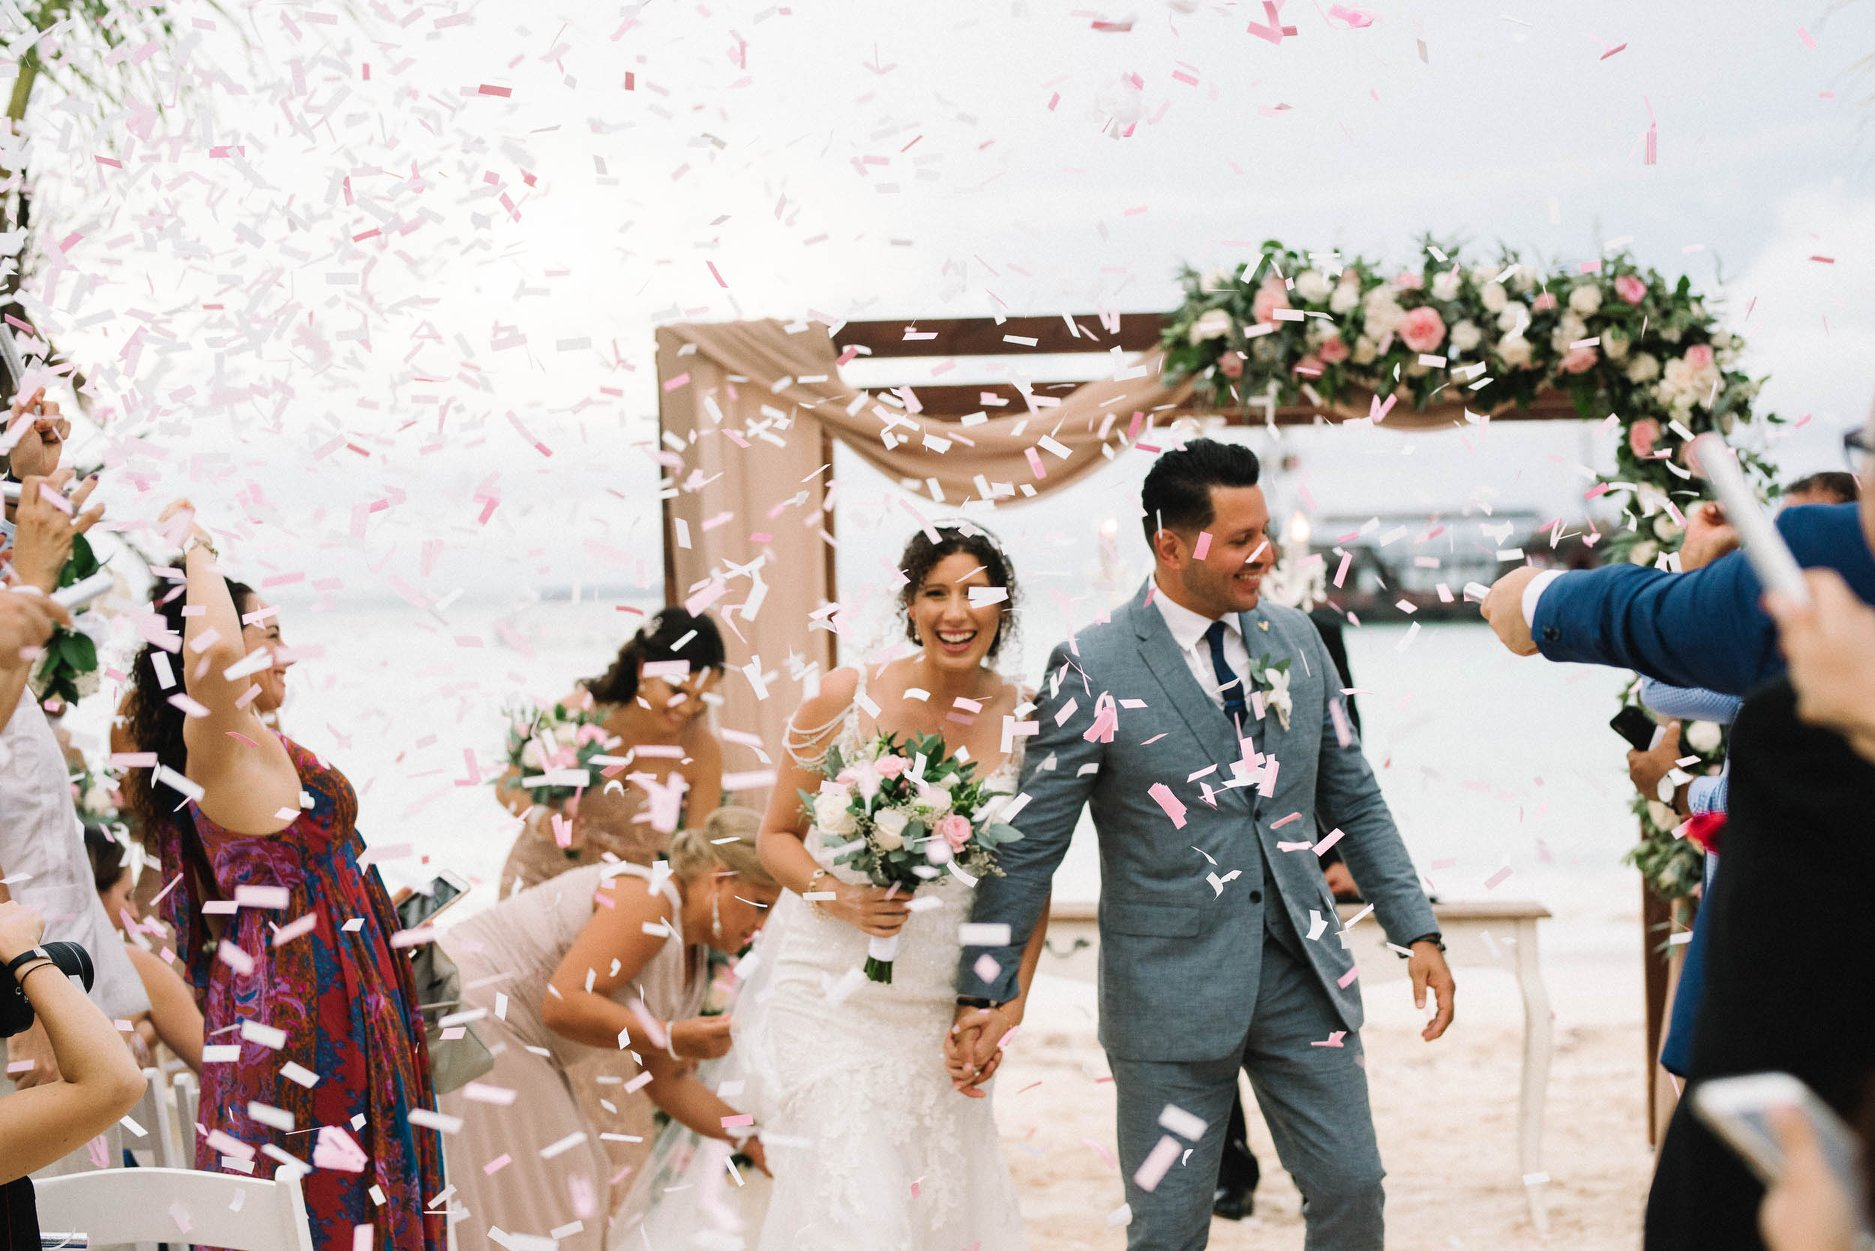 Confetti for Weddings - So versatile, yet so festive, confetti is a great addition to recessionals, grand entrances, dance floor moments, and grand exits. .